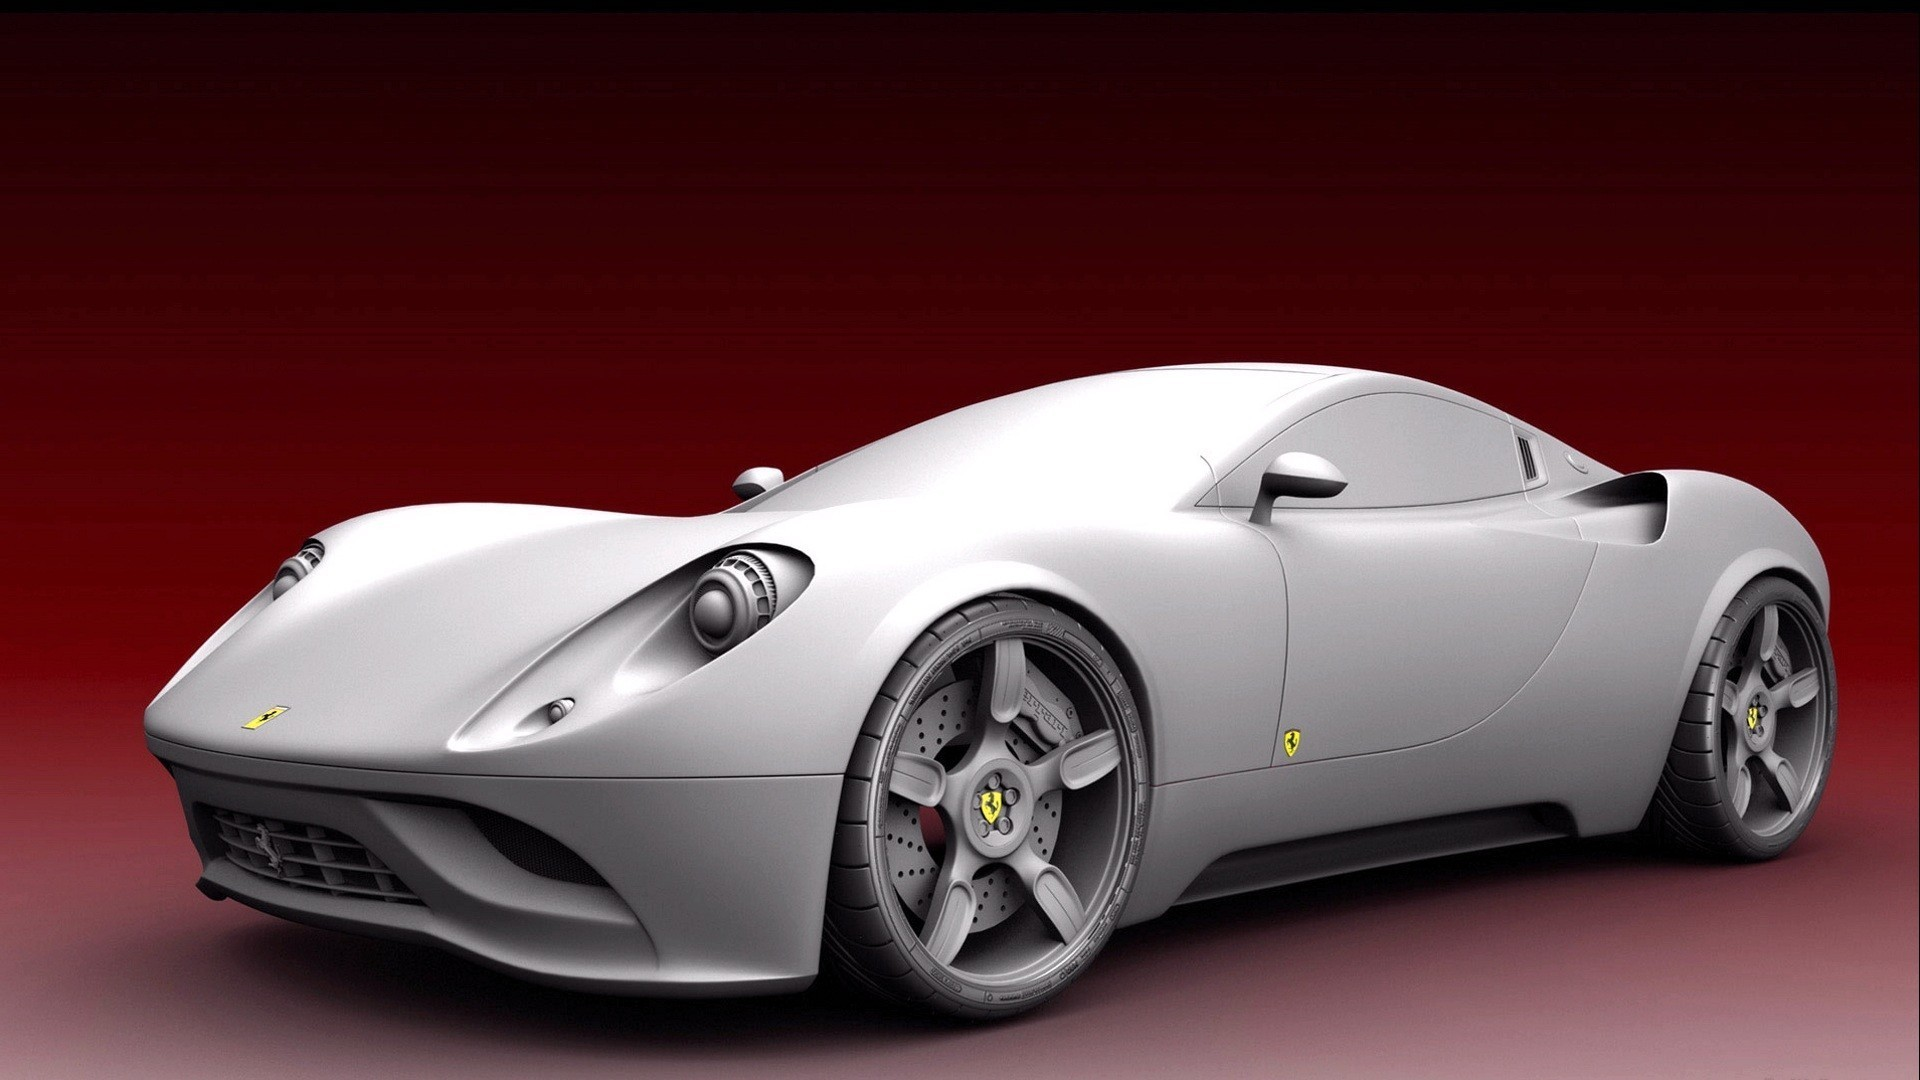 Ferrari Concept Cars Vehicles White Wallpaper Allwallpaper In